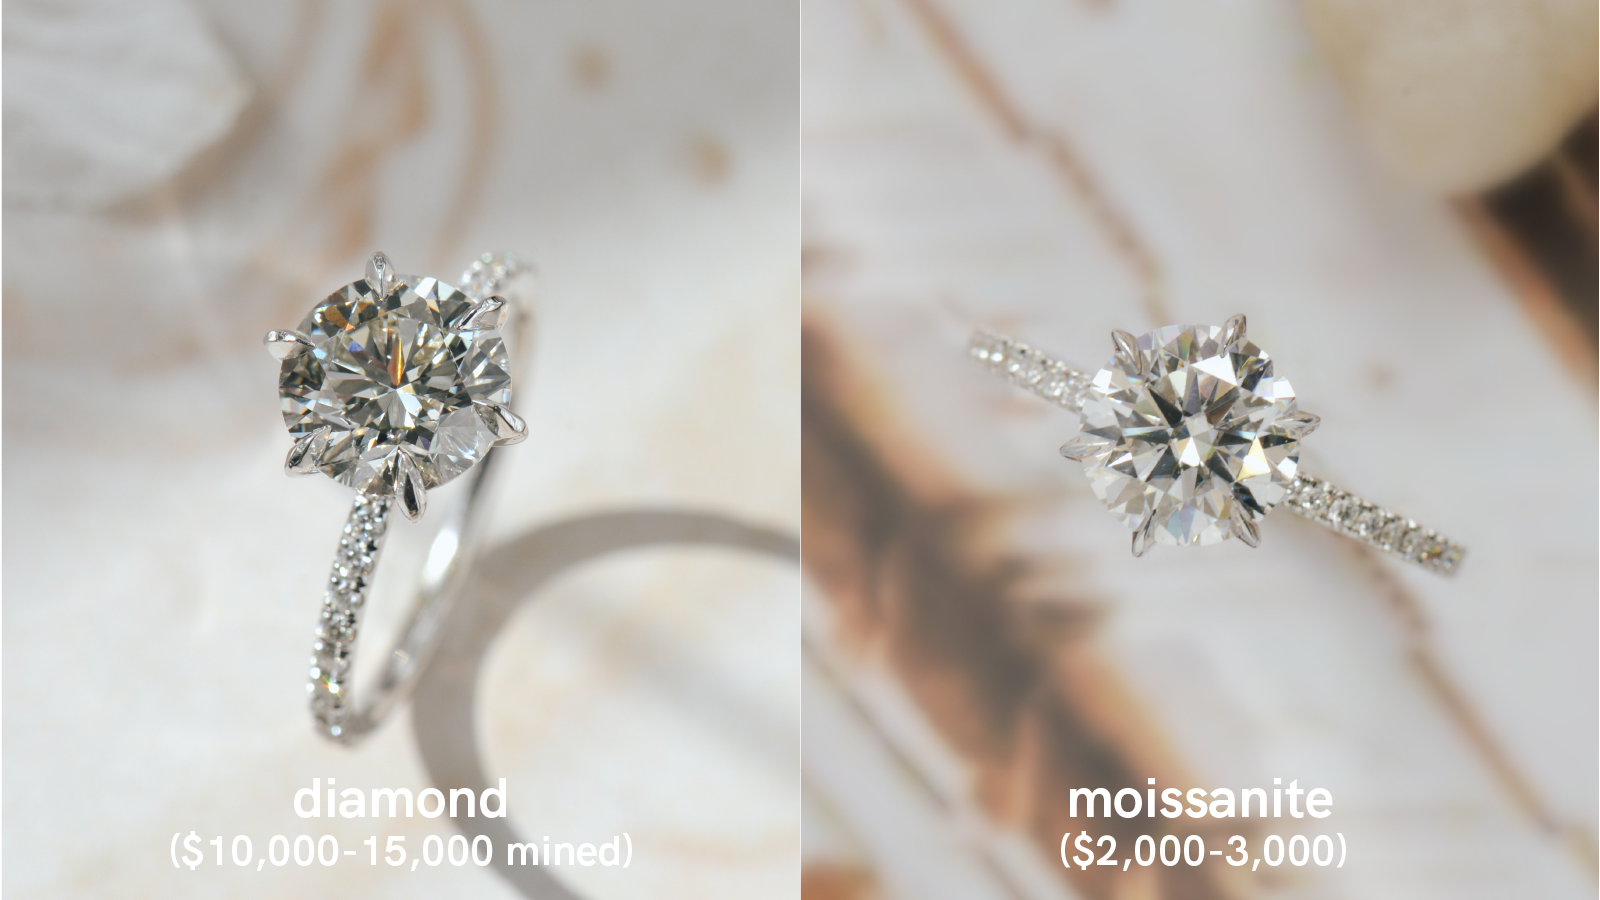 Diamond ring with side stones vs Moissanite ring with side stonescomparison